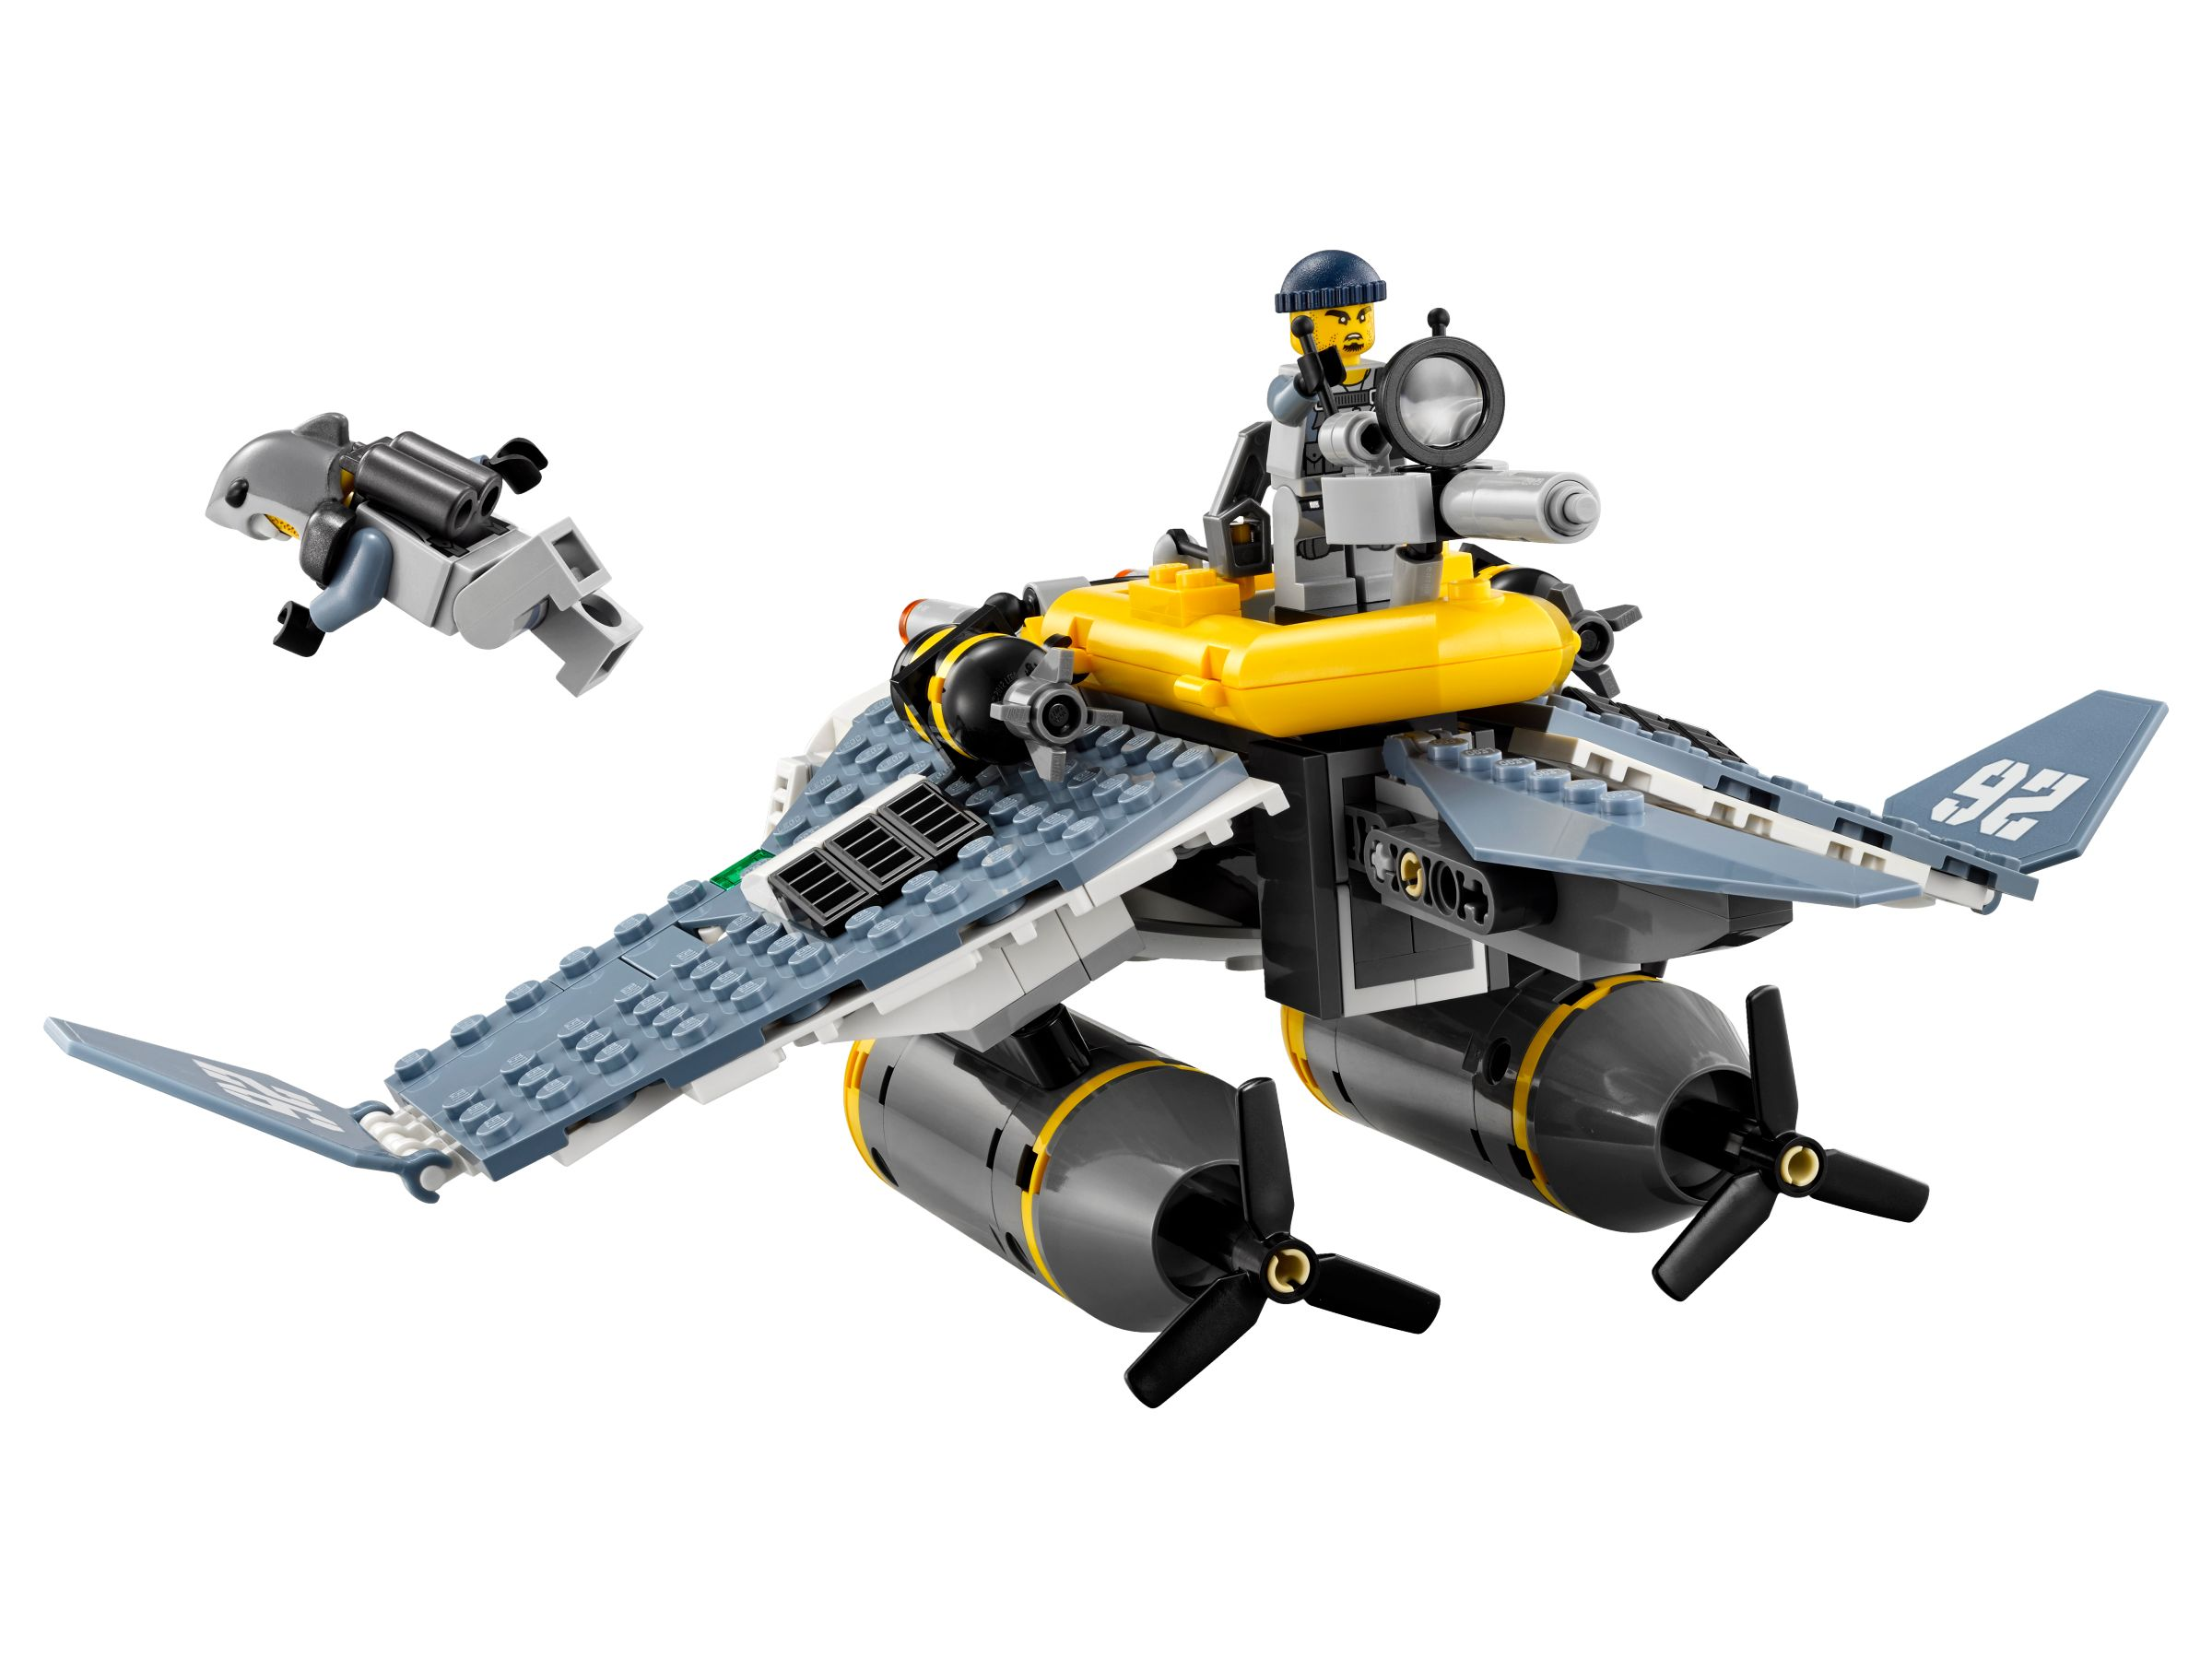 LEGO The LEGO Ninjago Movie 70609 Mantarochen-Flieger LEGO_70609_alt3.jpg